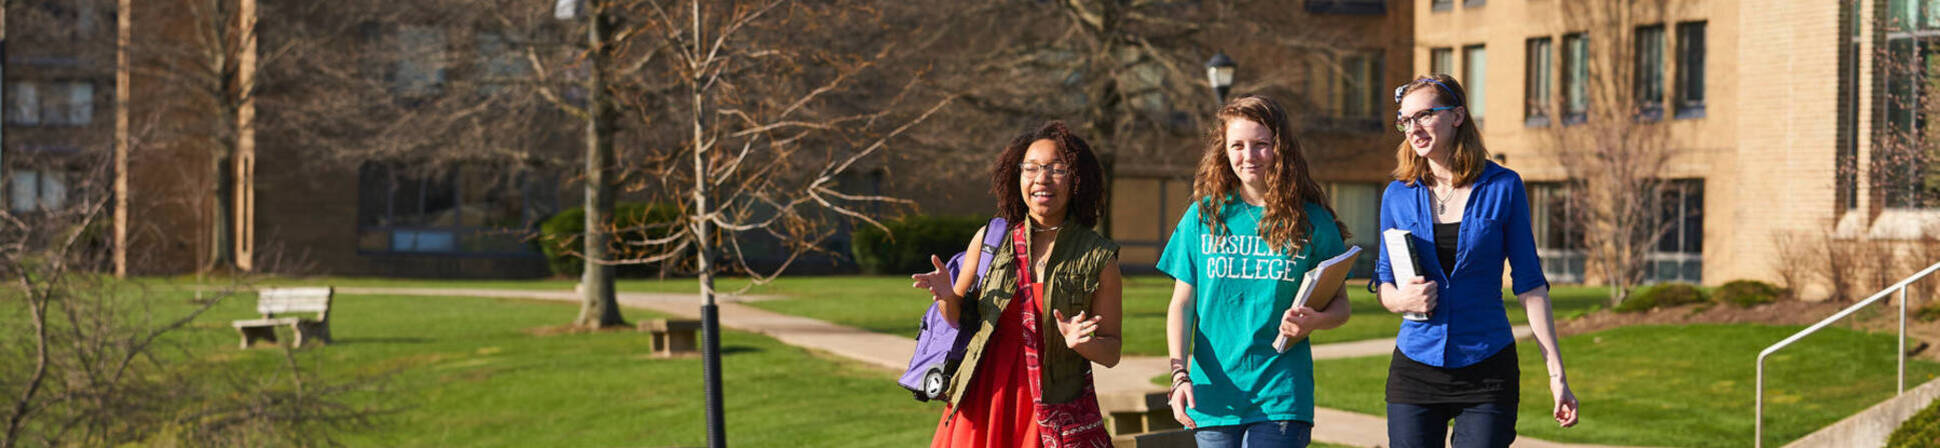 Ursuline college students walking to class2